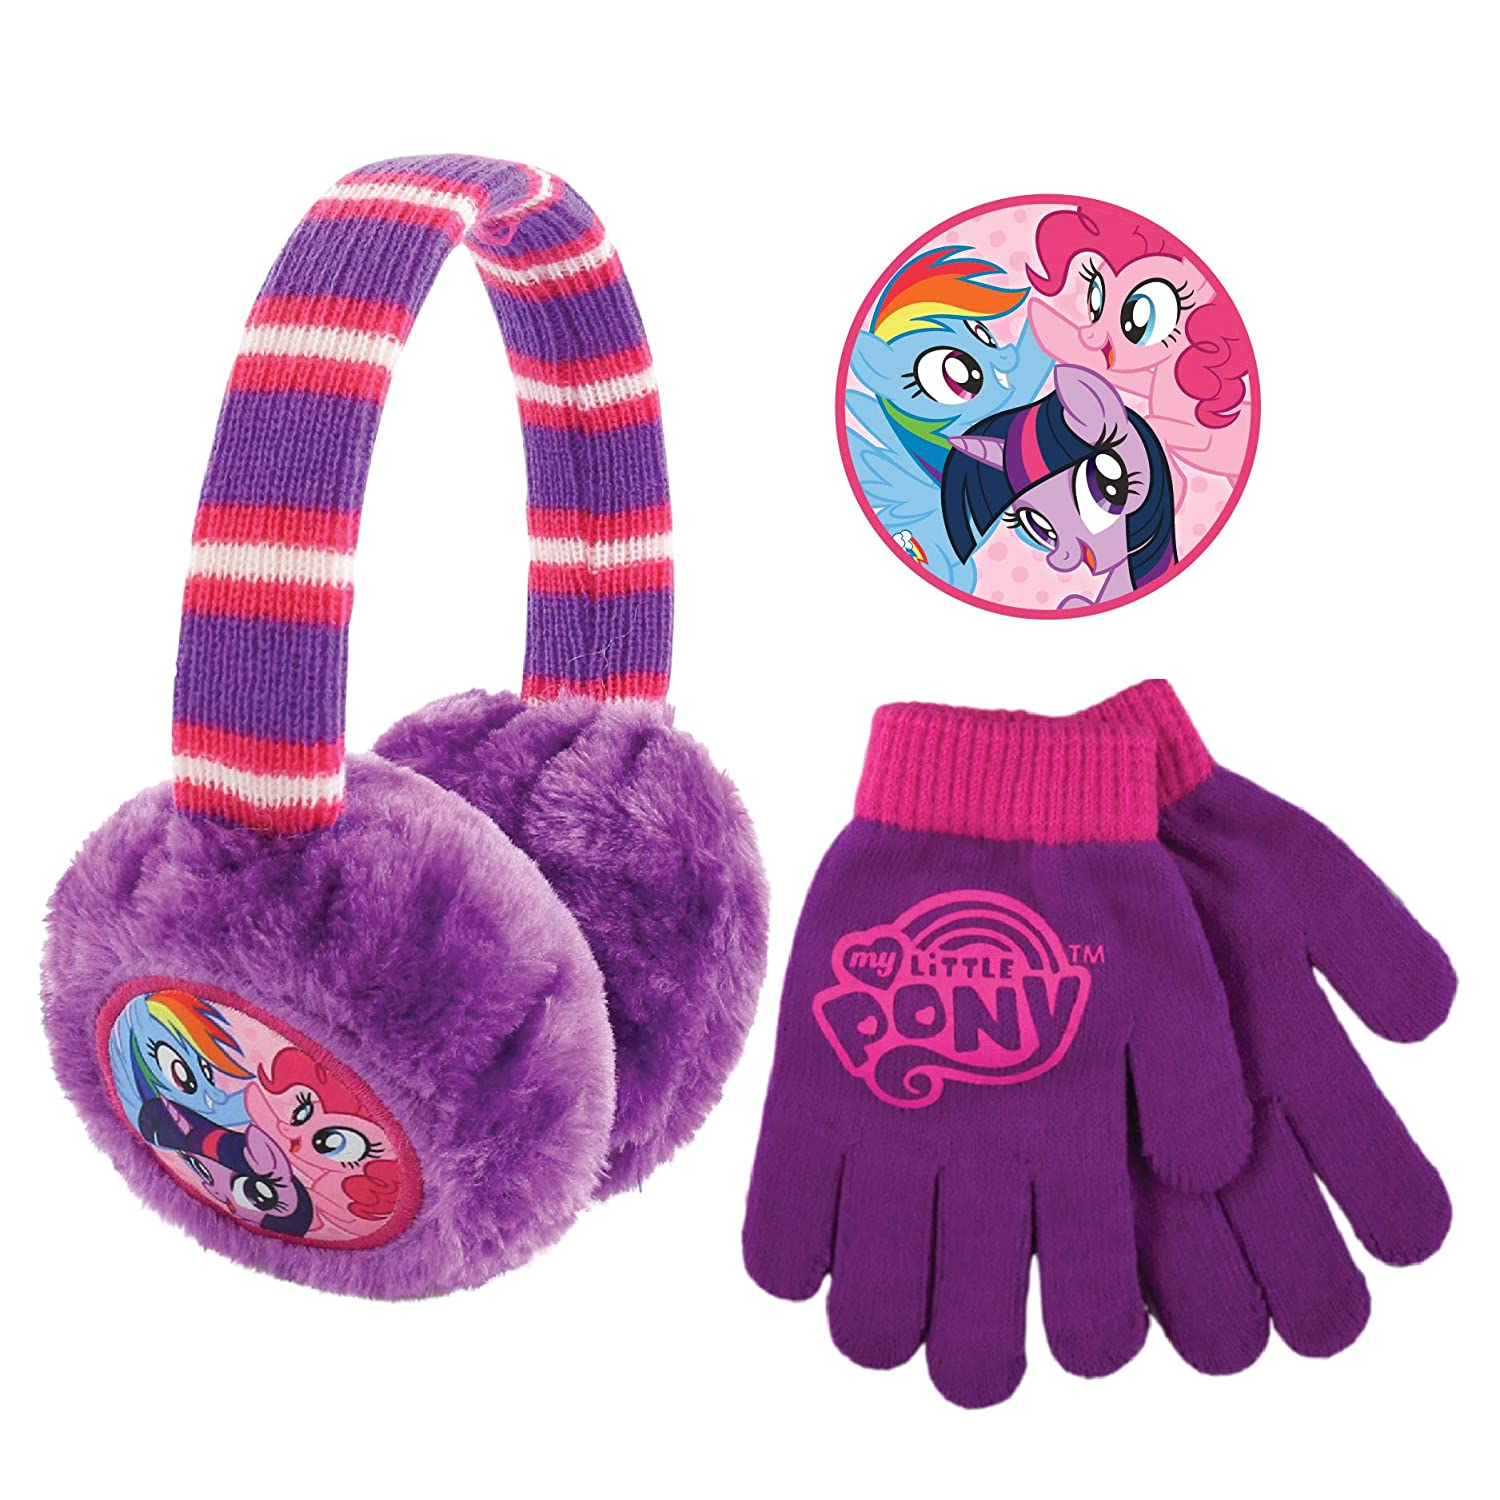 Hasbro Plush Girls Earmuffs and Glove Set, My Little Pony, Purple, Ages 4-7